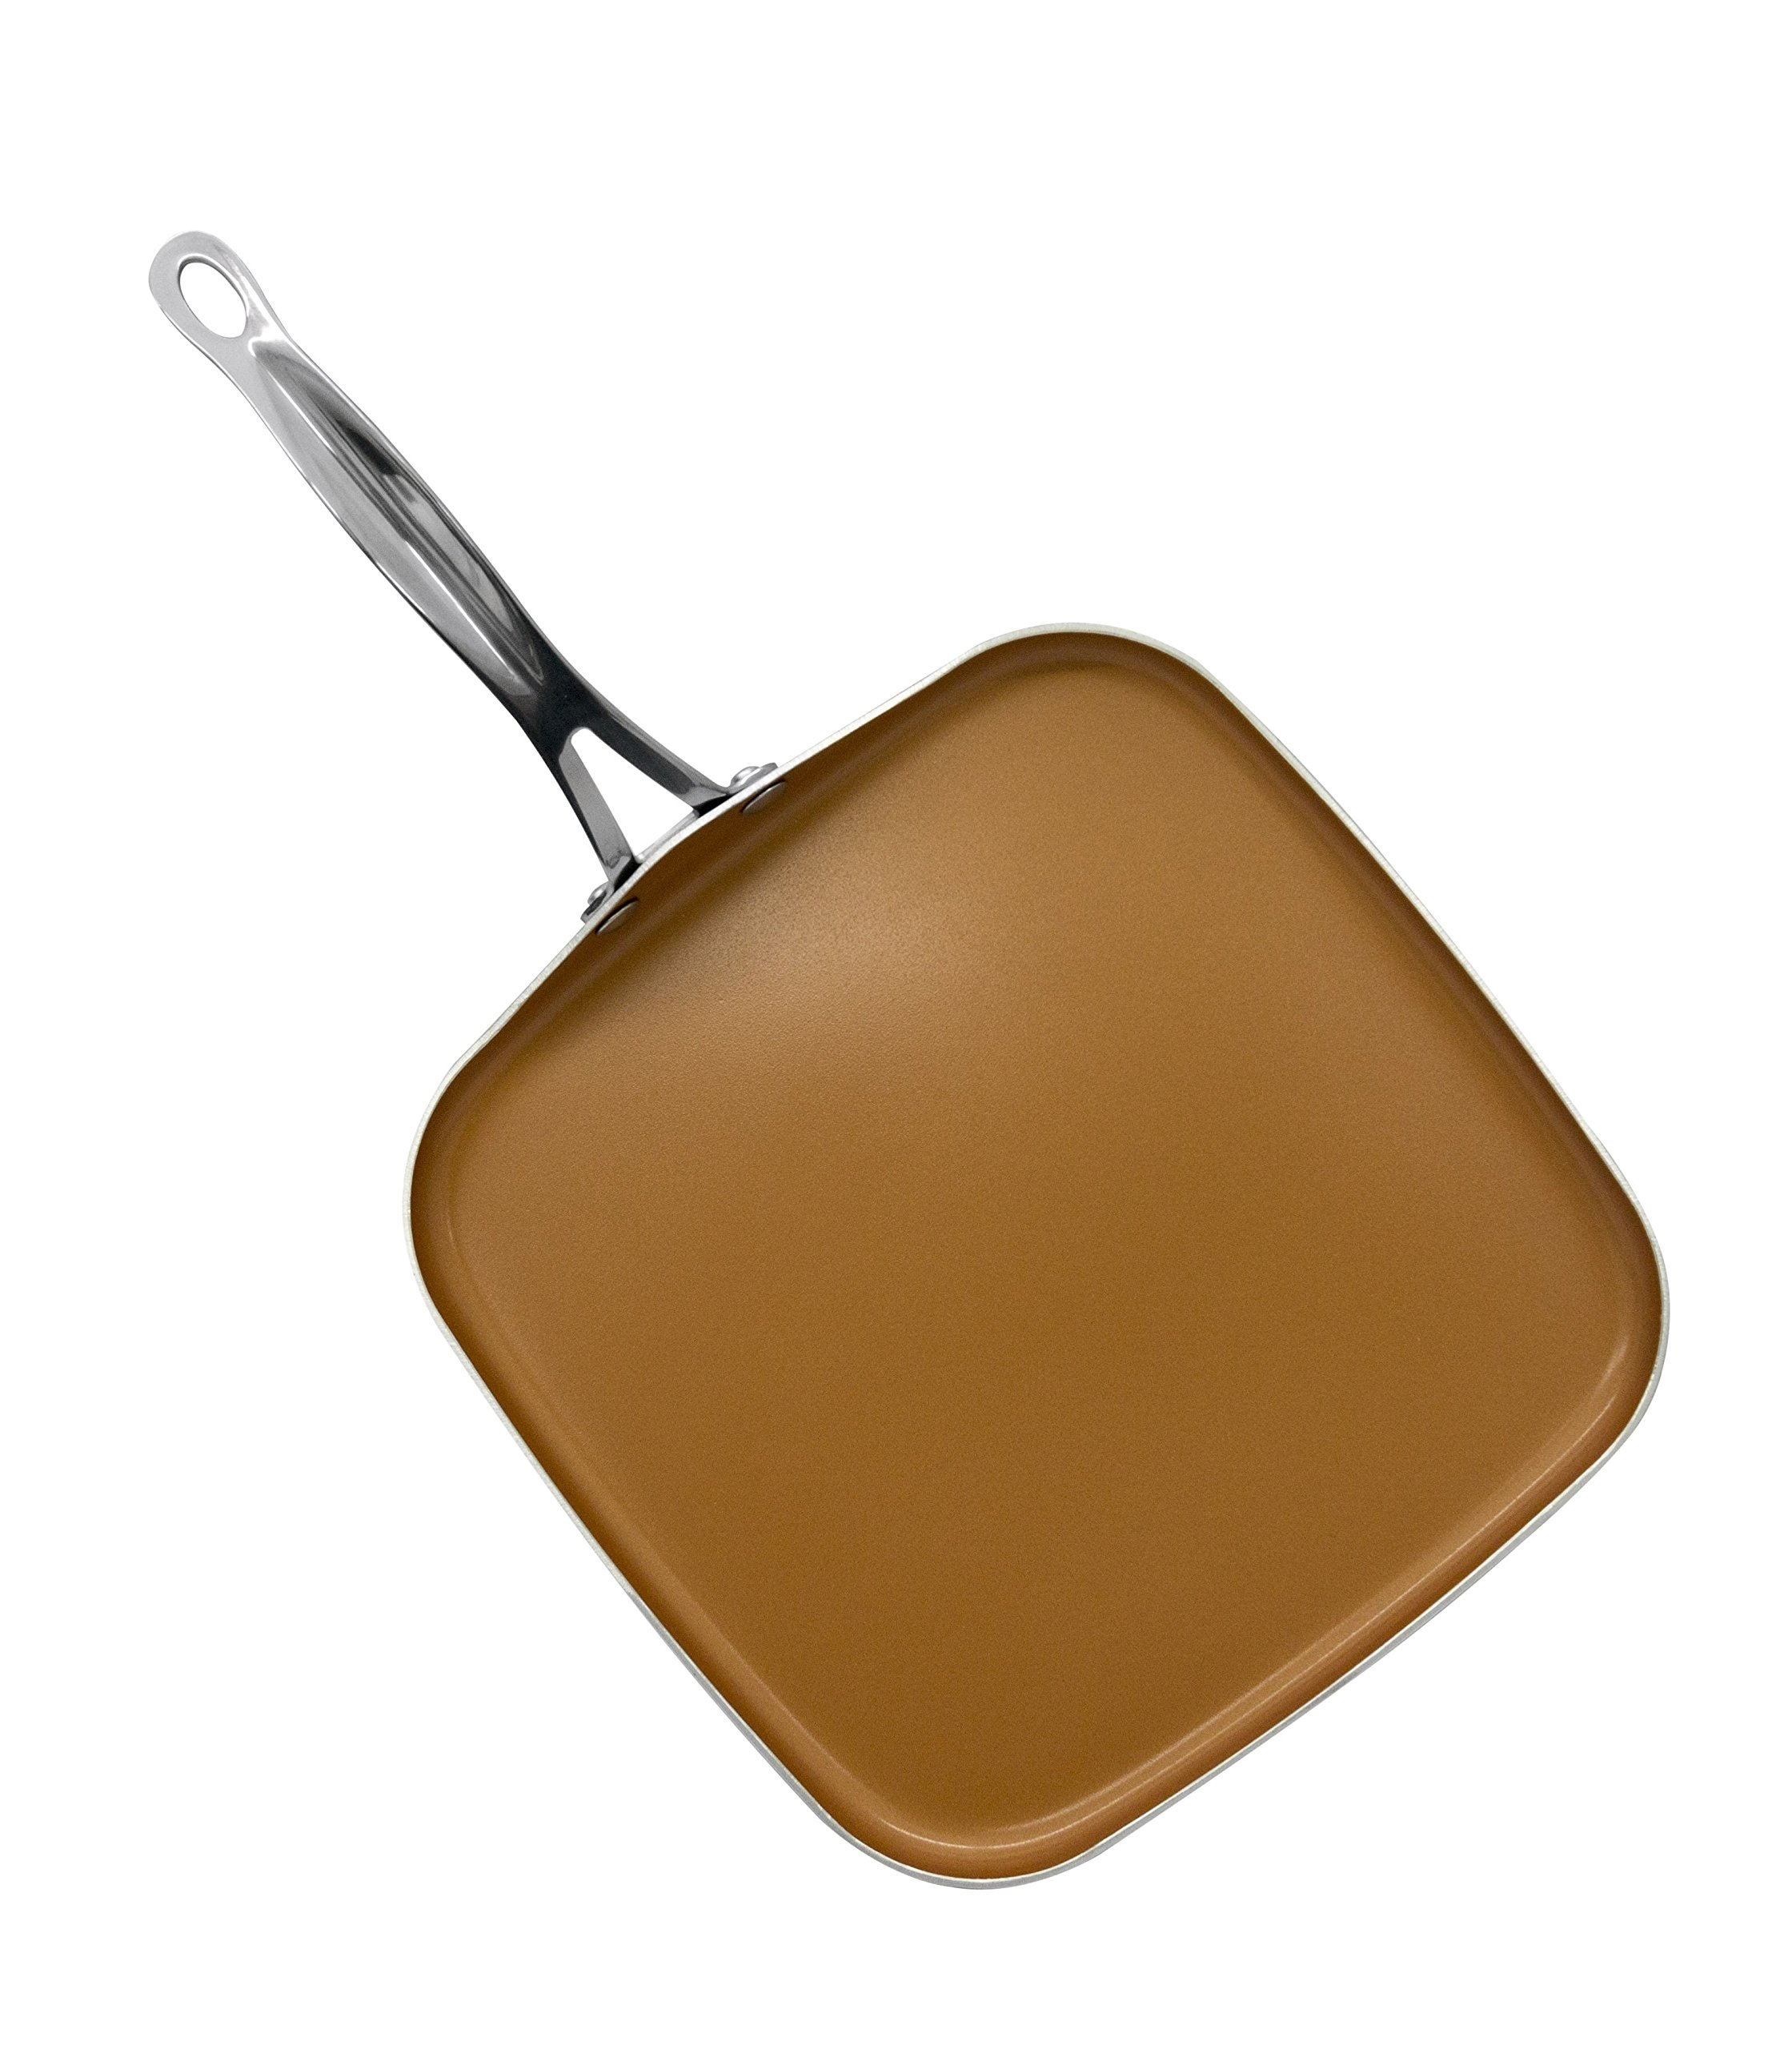 Gotham Steel Copper Non-Stick 10.5'' Square Griddle Pan– Perfect for Omelets, Pancakes and more. Nonstick Copper, Dishwasher Safe with Stainless Handle by GOTHAM STEEL